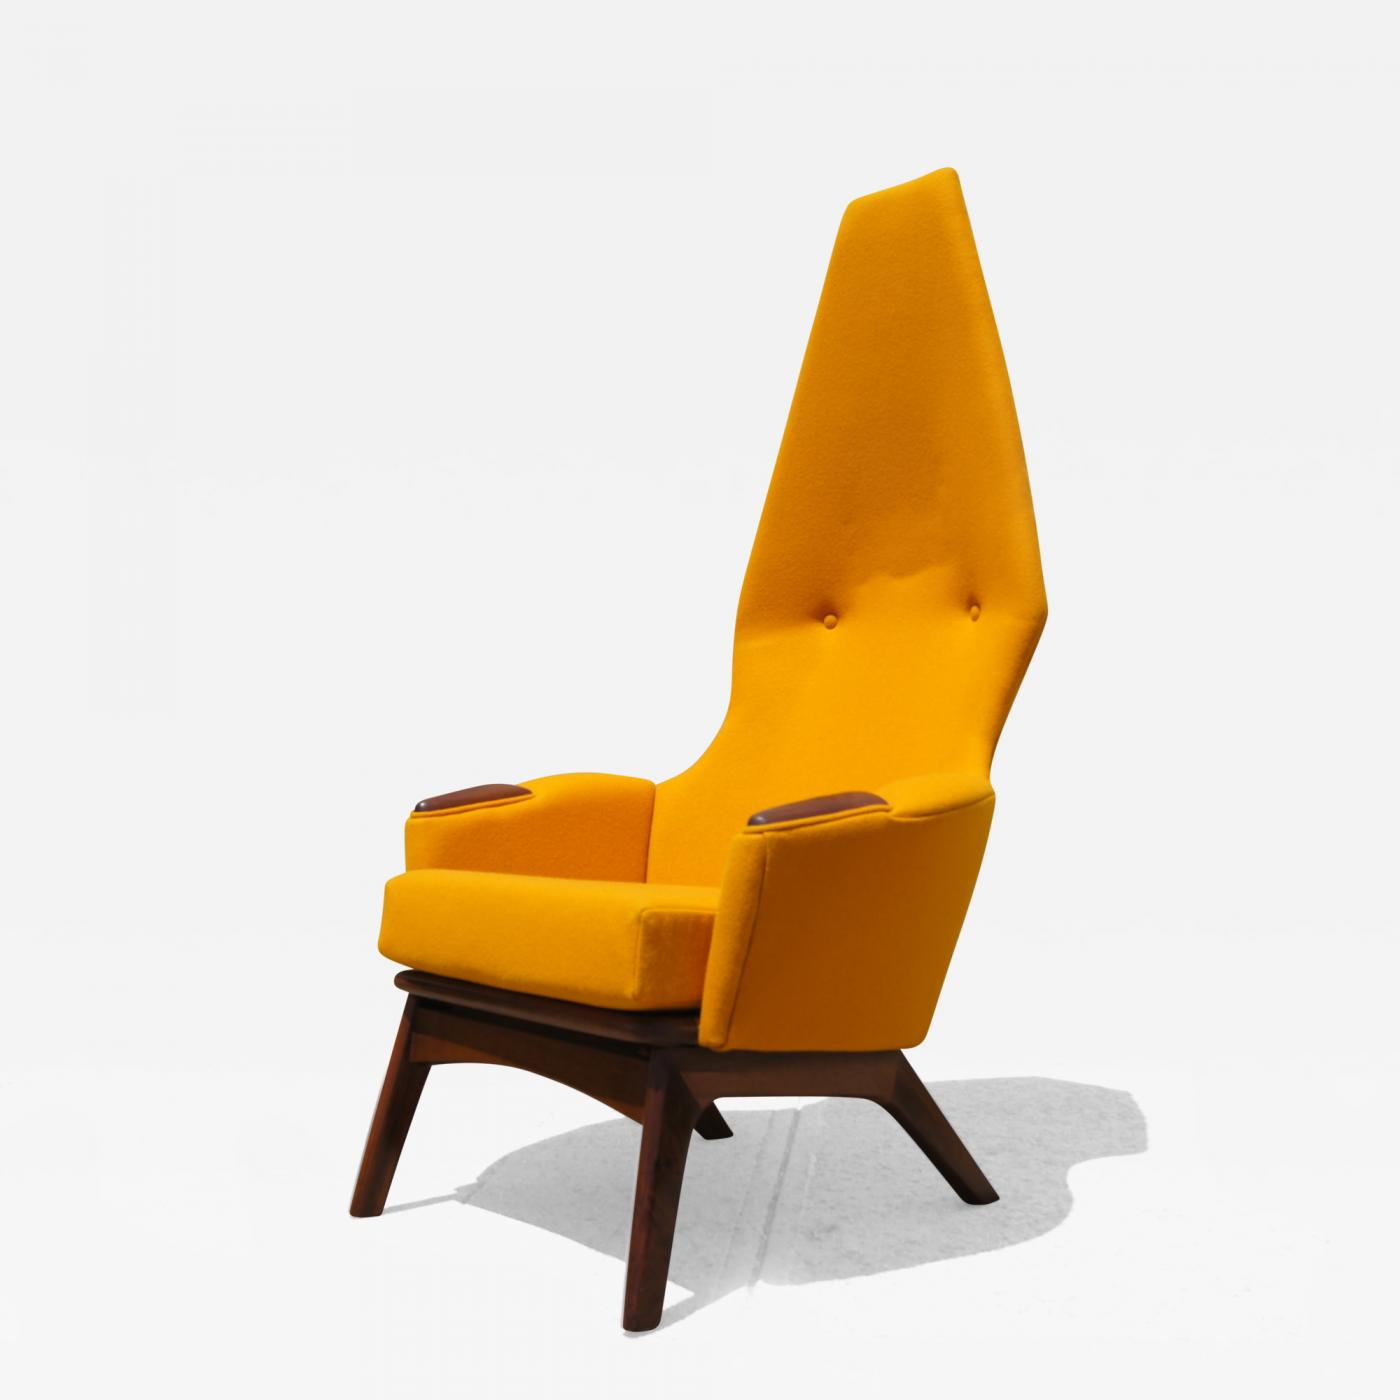 Super Adrian Pearsall High Backed 2056 C Armchair By Adrian Pearsall For Craft Associates Camellatalisay Diy Chair Ideas Camellatalisaycom